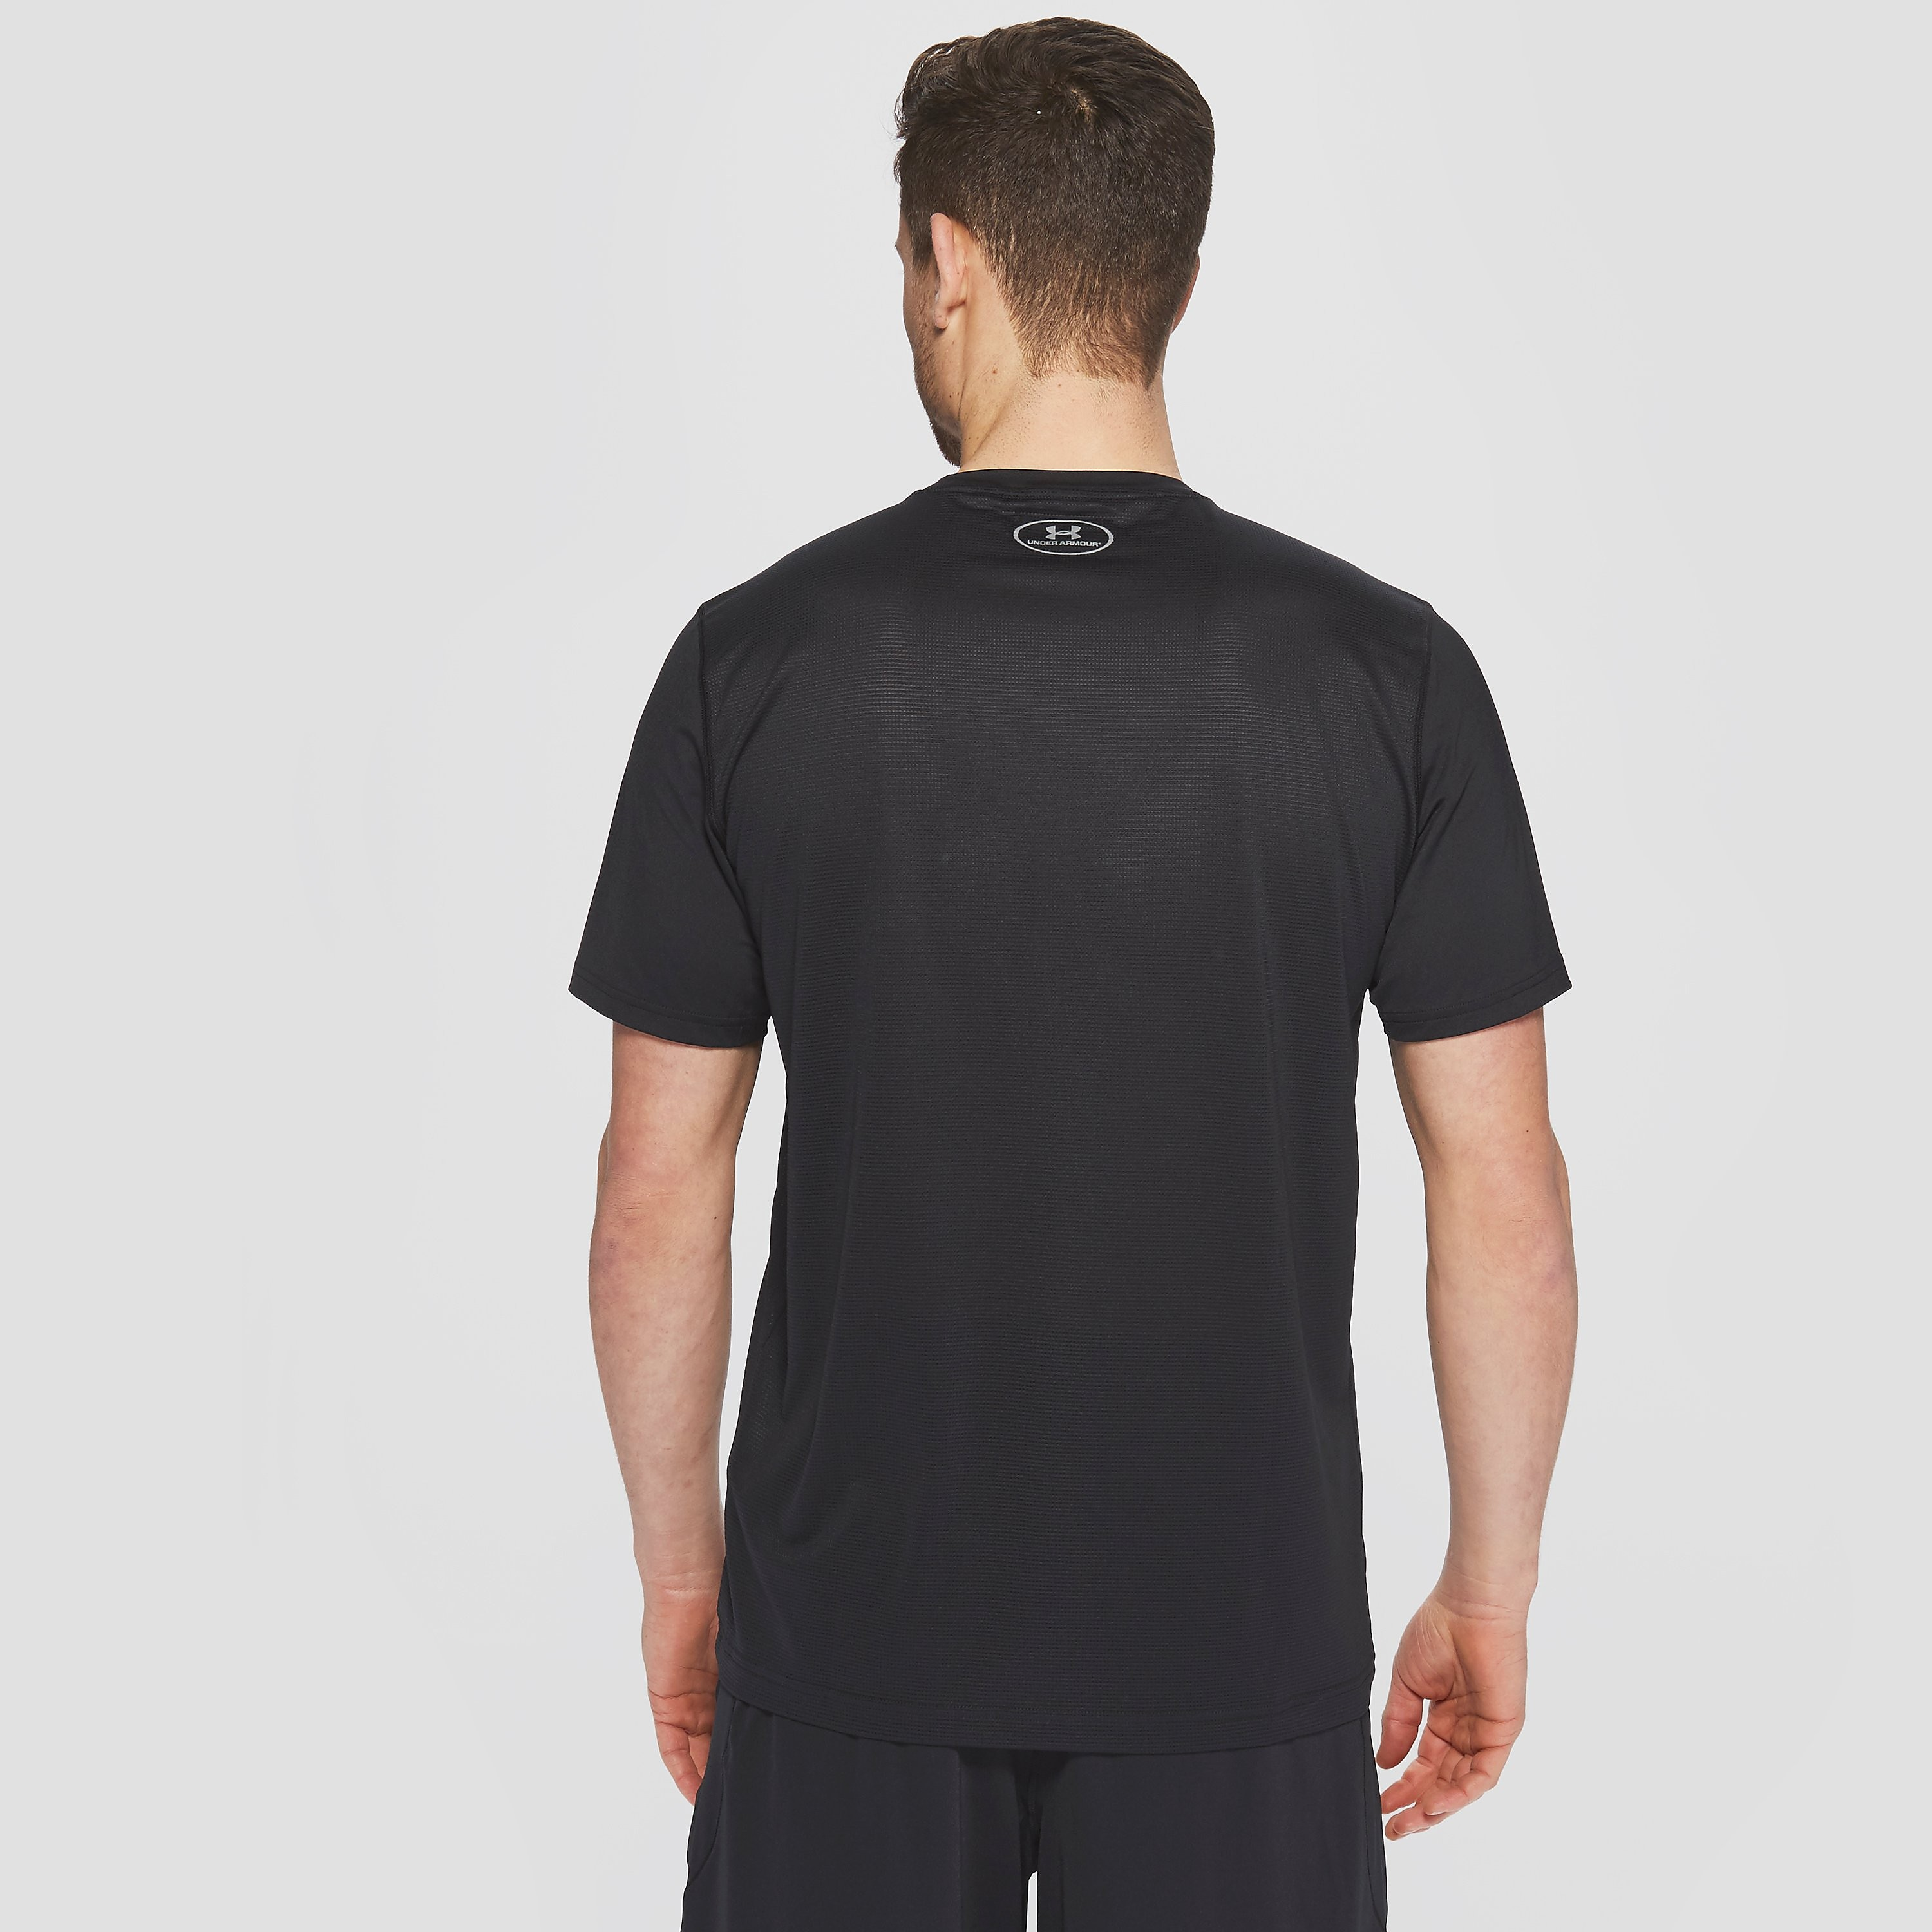 Under Armour Raid Short Sleeve Men's Top